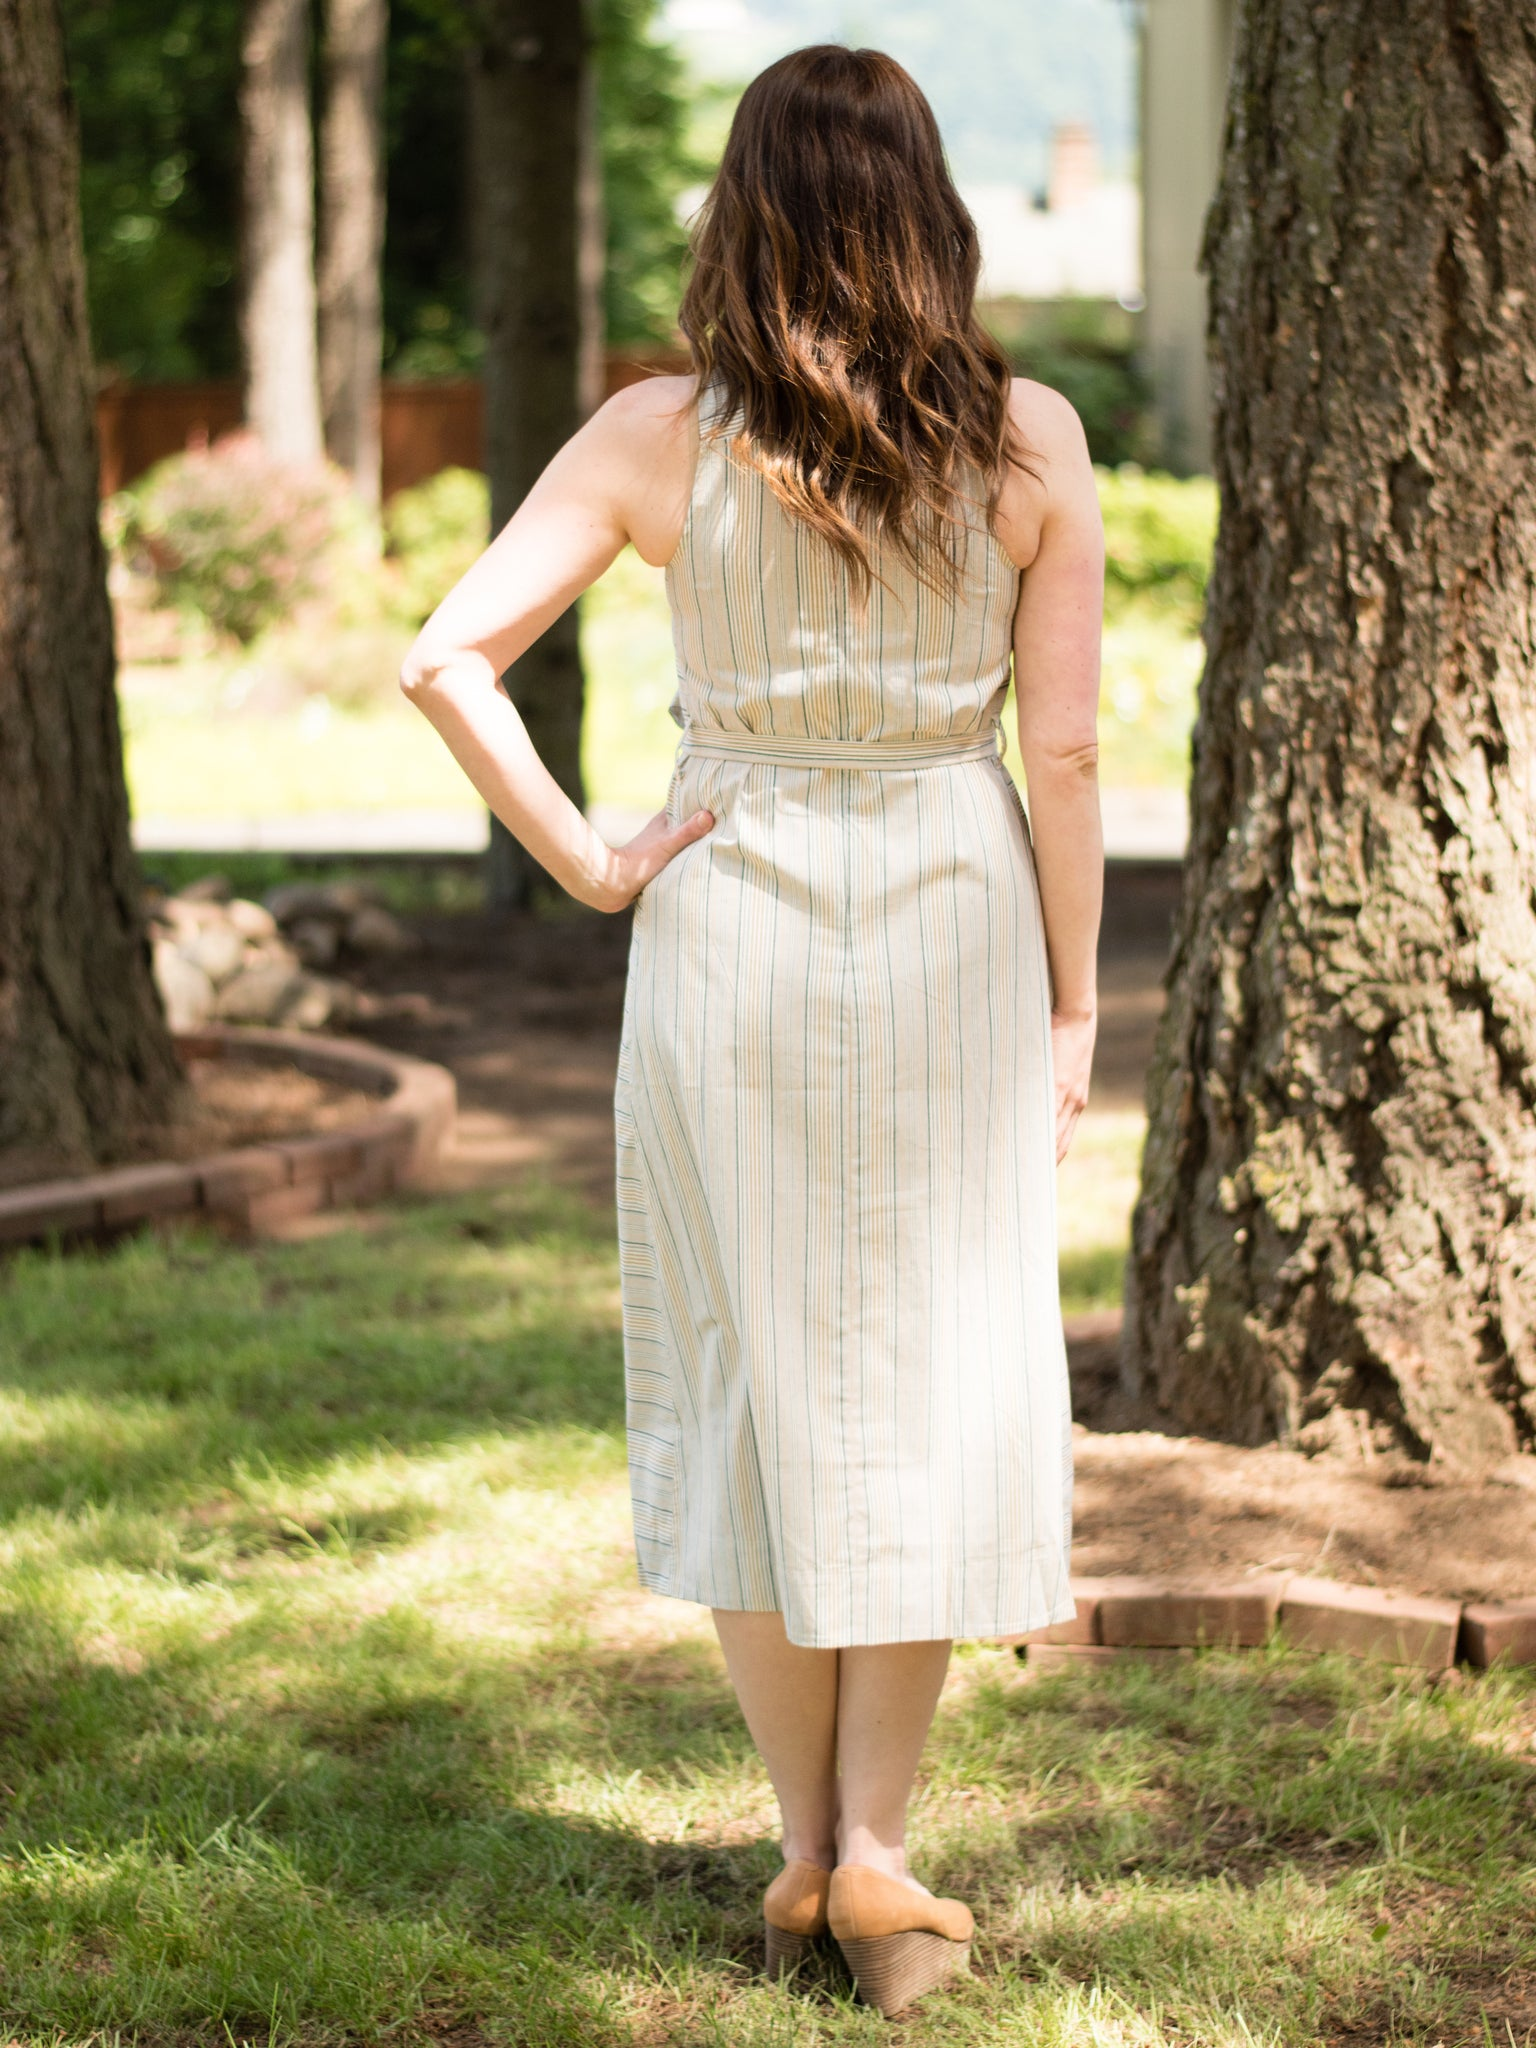 Farmer's Market Midi Dress - Enclothe Boutique